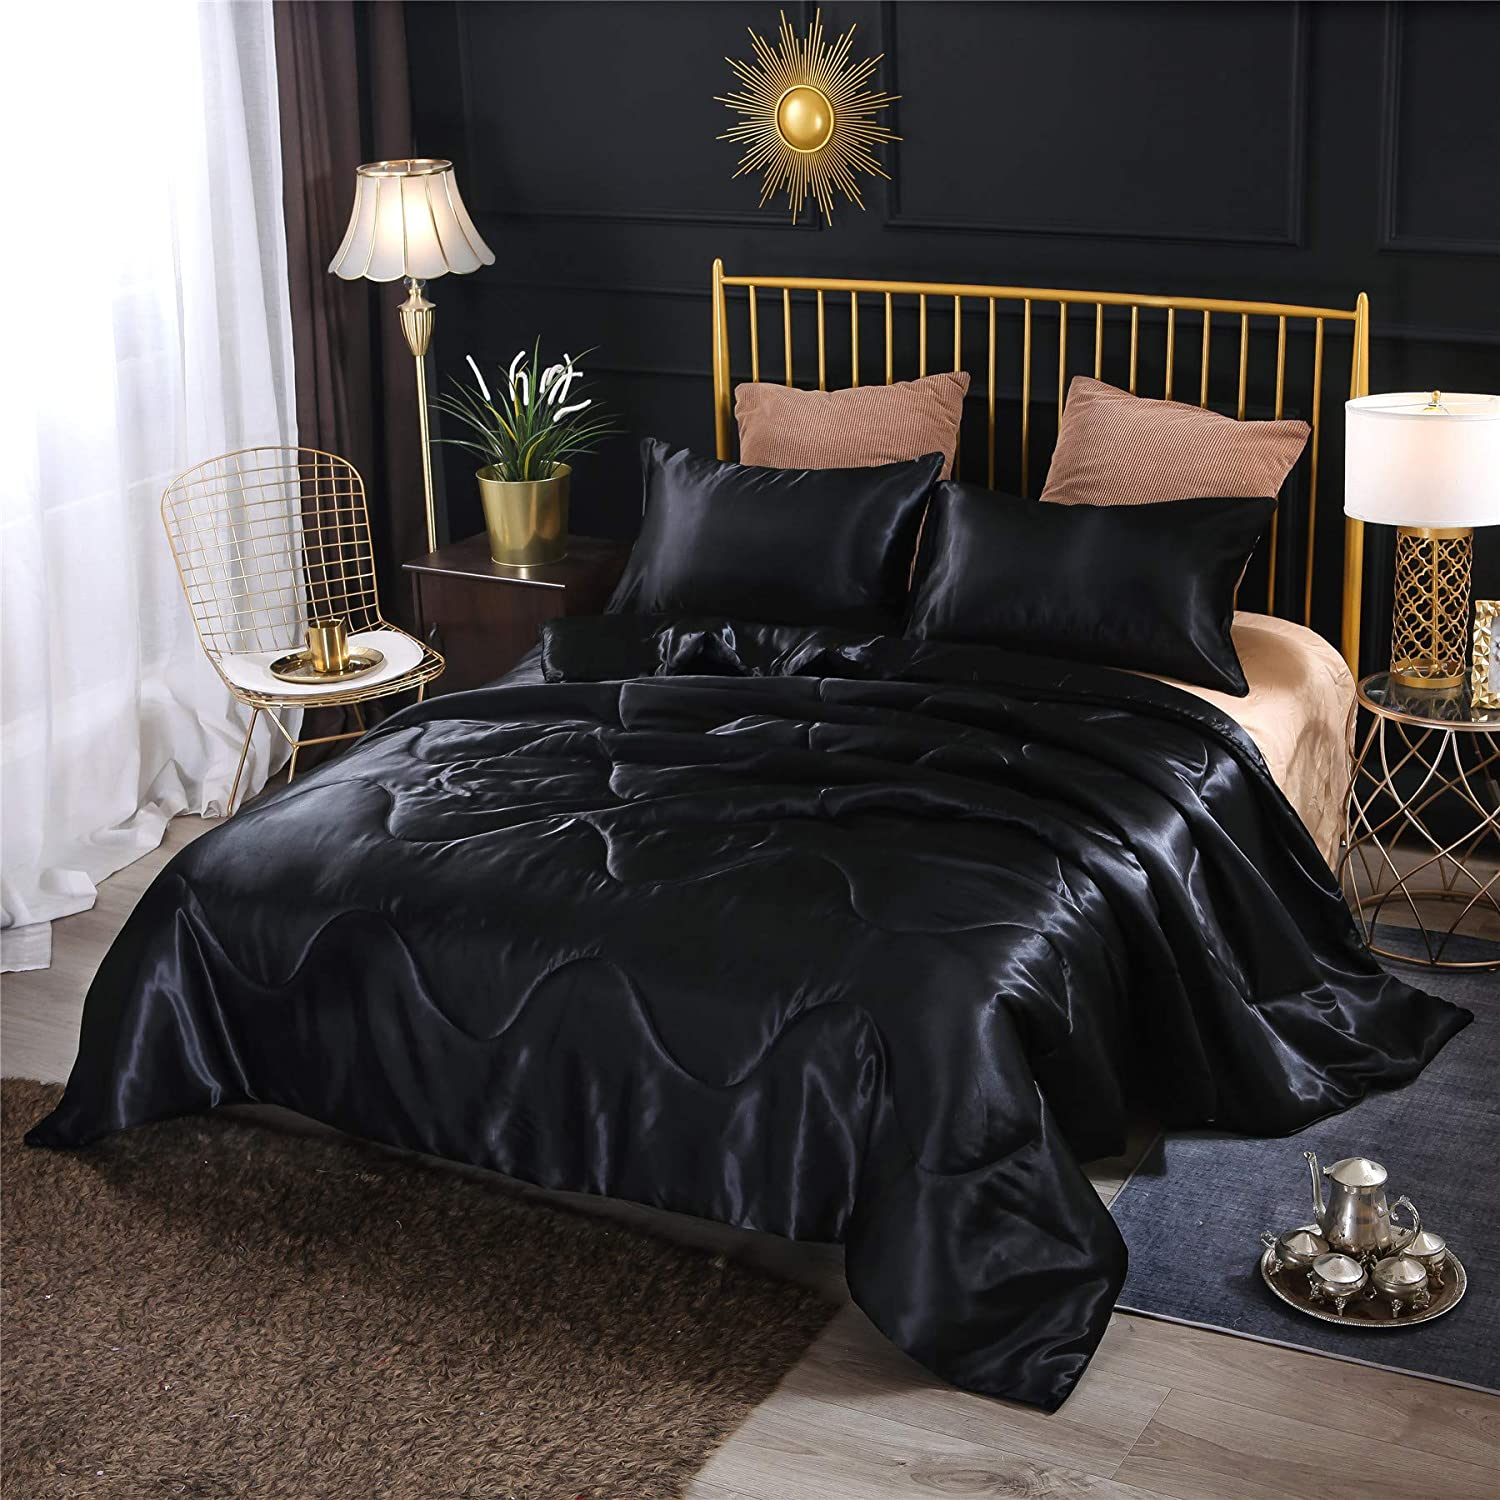 A Nice Night Satin Silky Soft Quilt Sexy Luxury Super Soft Microfiber Bedding Comforter Set Full/Queen, Light Weighted (Black, Queen